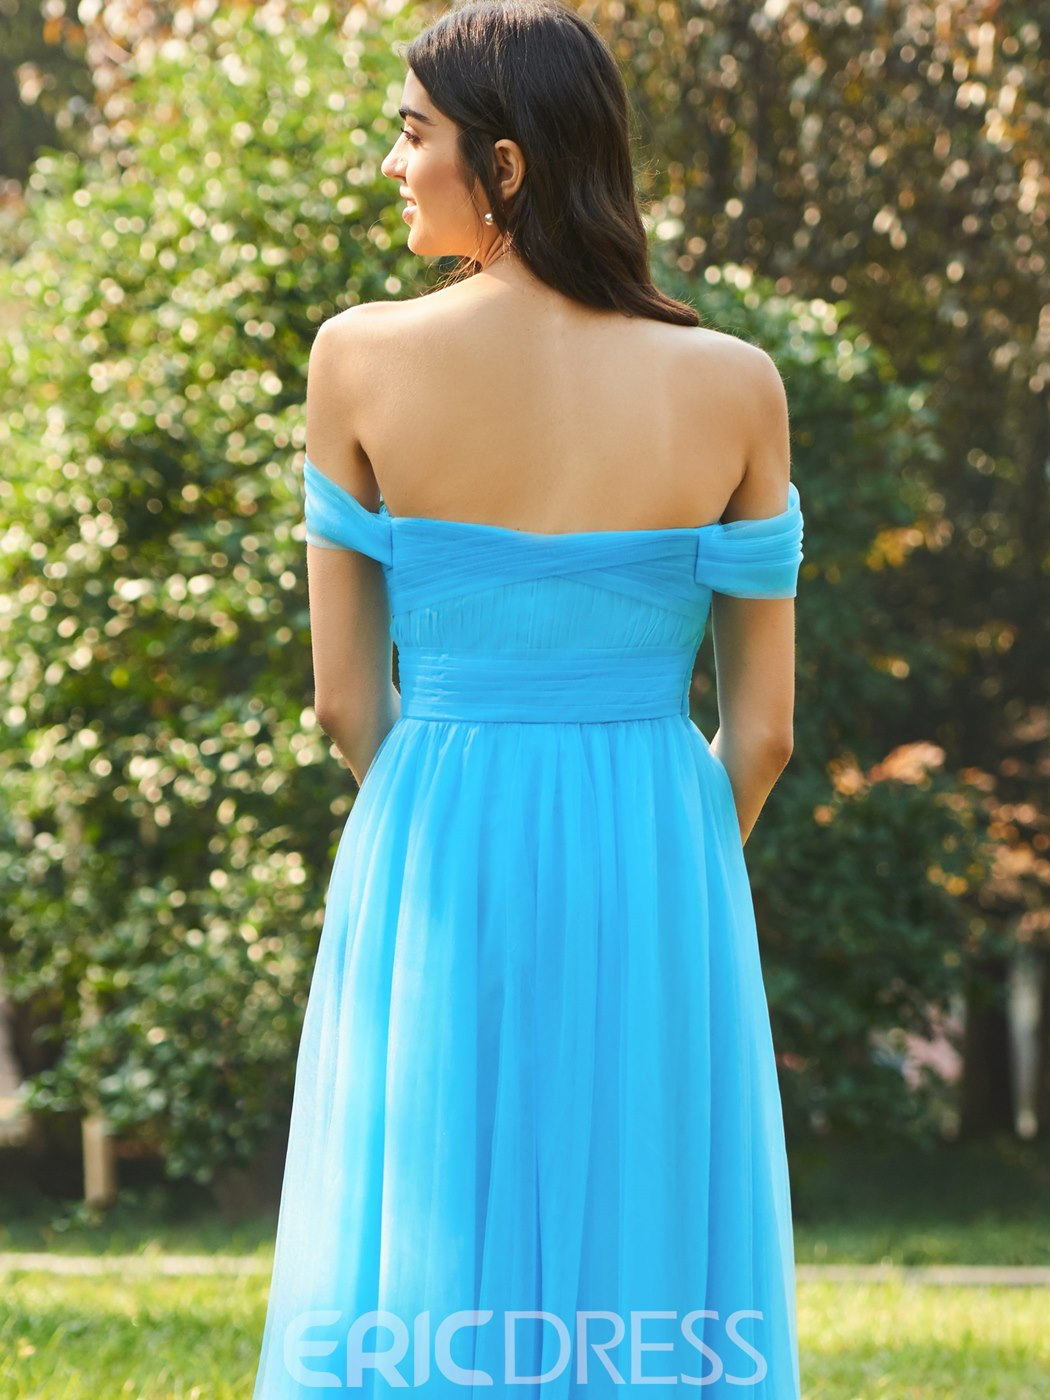 Erikdress off-the-shoulder a-line Brautjungfernkleid